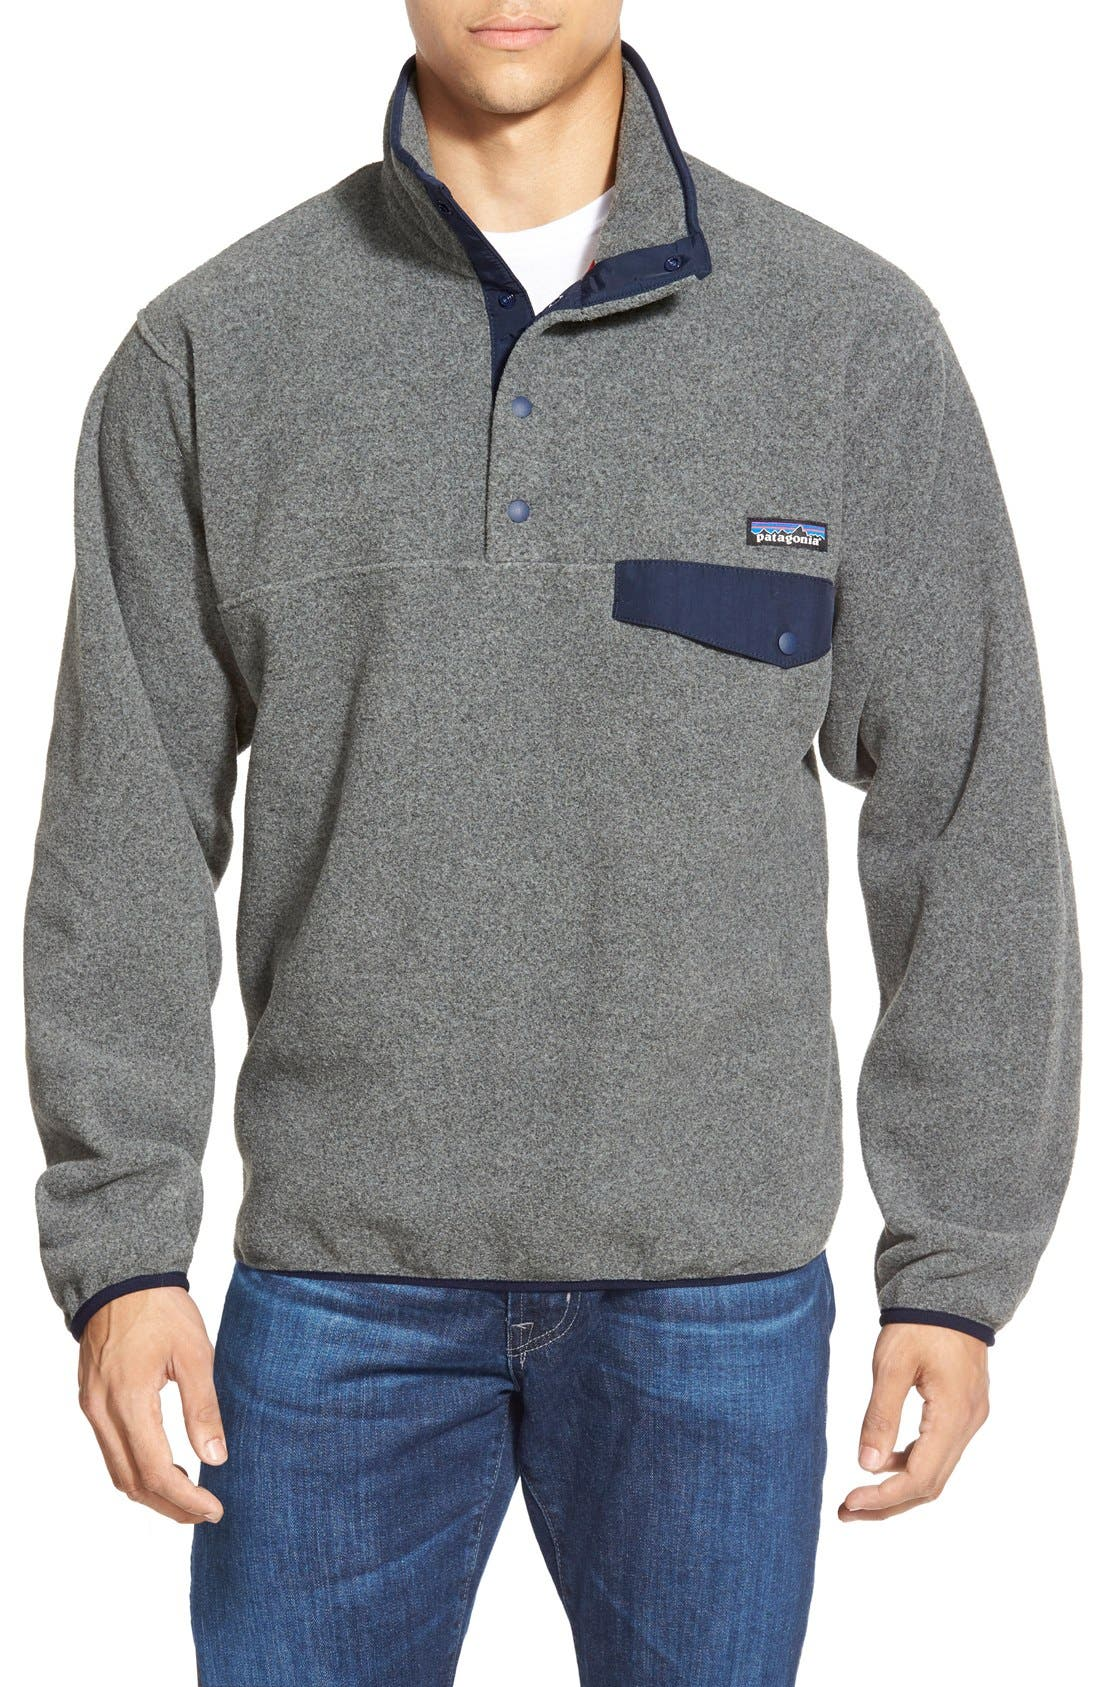 Synchilla<sup>®</sup> Snap-T<sup>®</sup> Fleece Pullover,                         Main,                         color, NICKEL/ NAVY BLUE